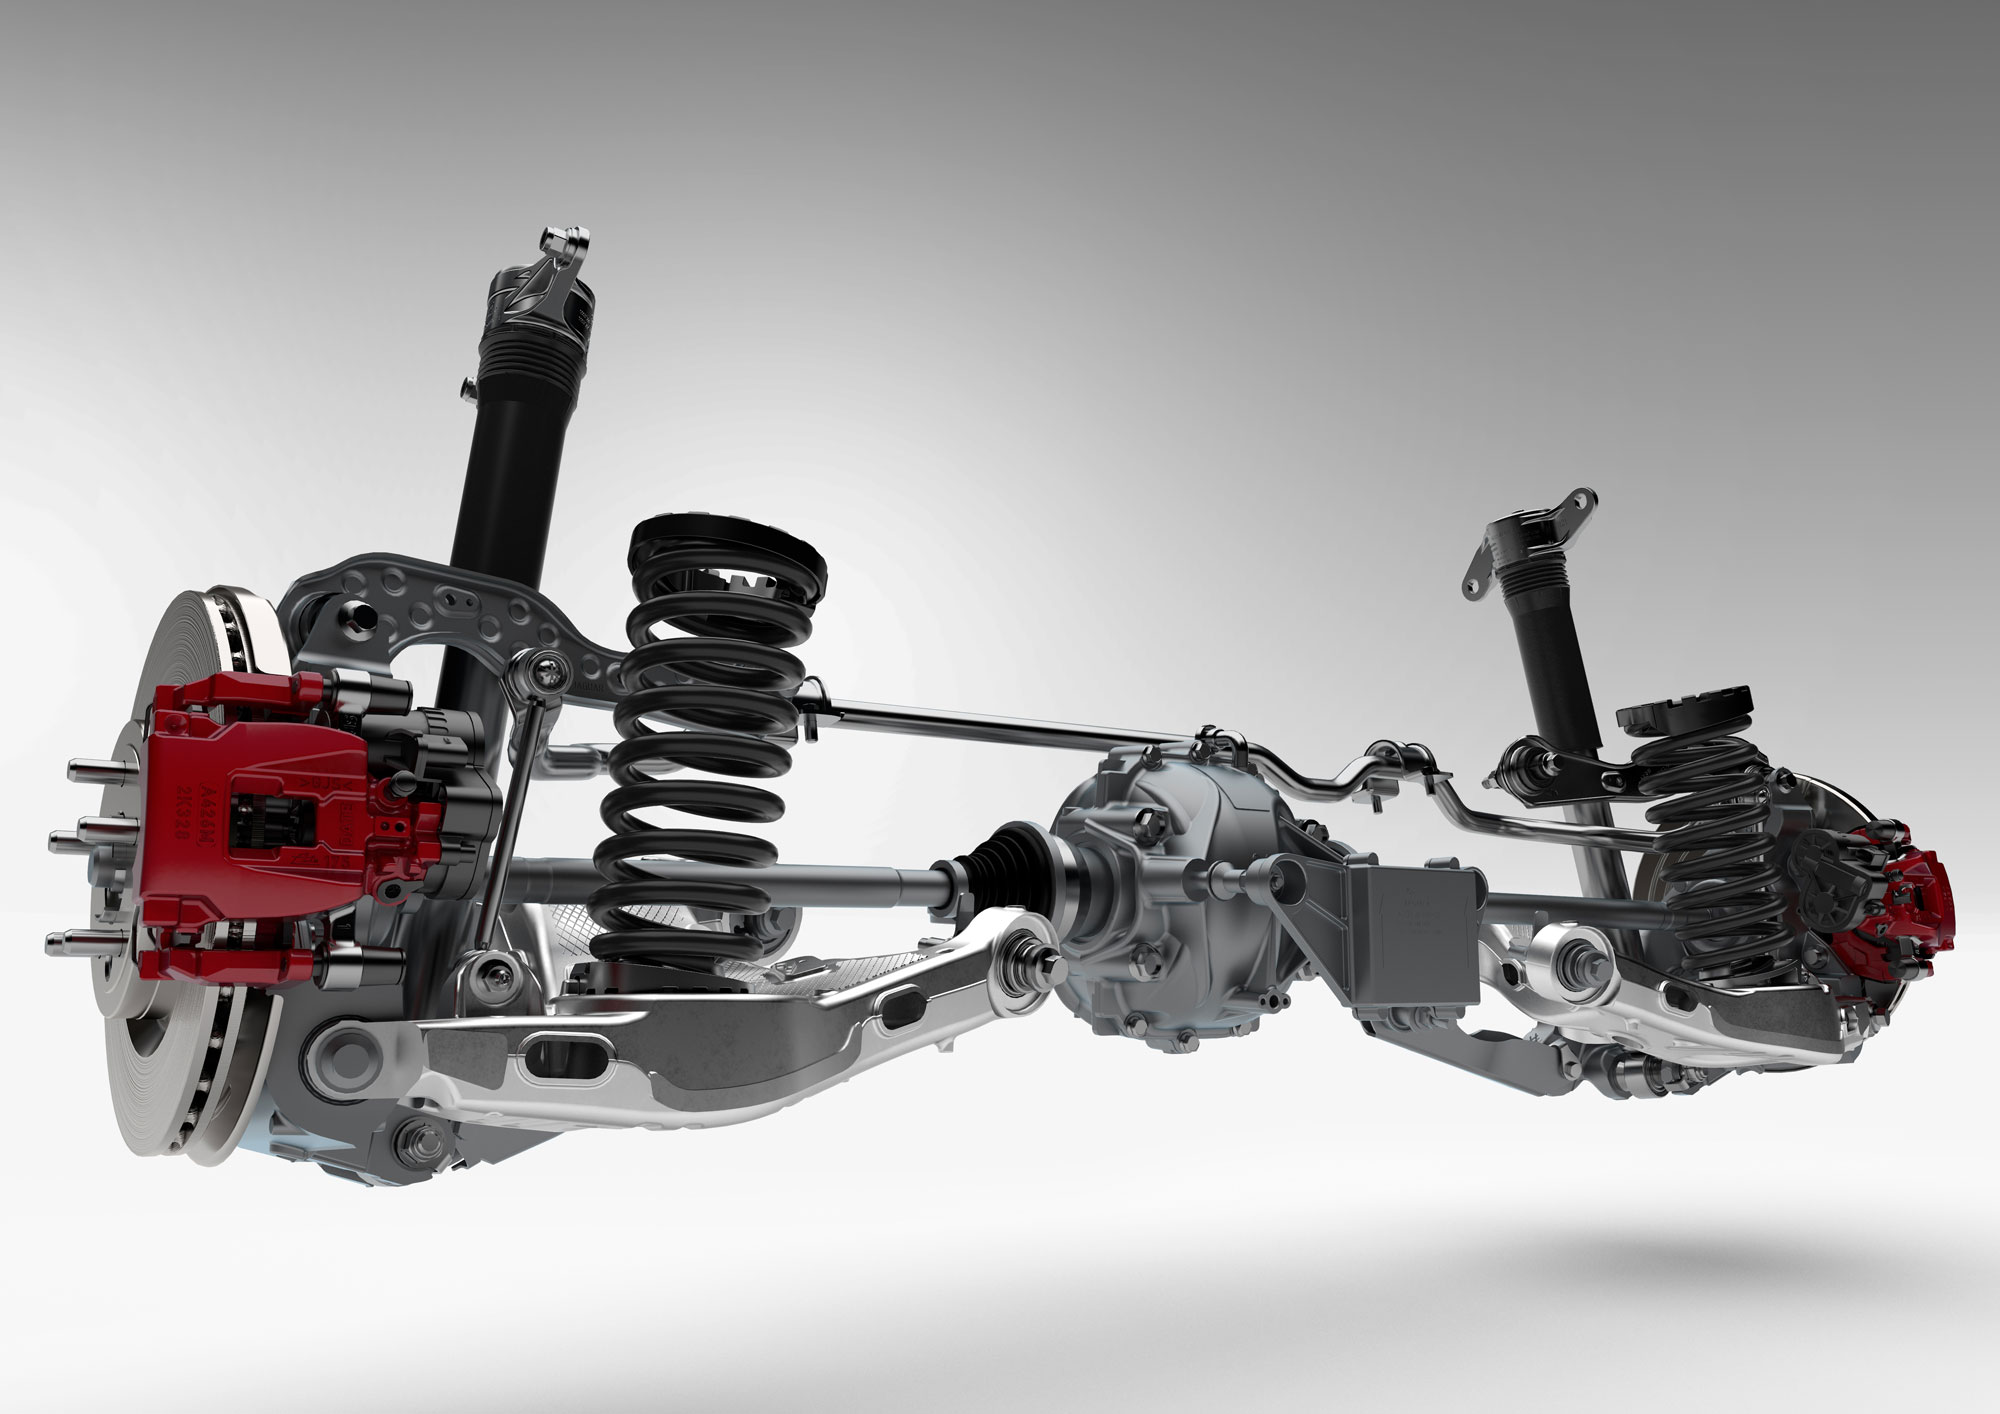 Double Wishbone Front And Integral Link Rear Suspension For Exceptional Handling Ride Comfort